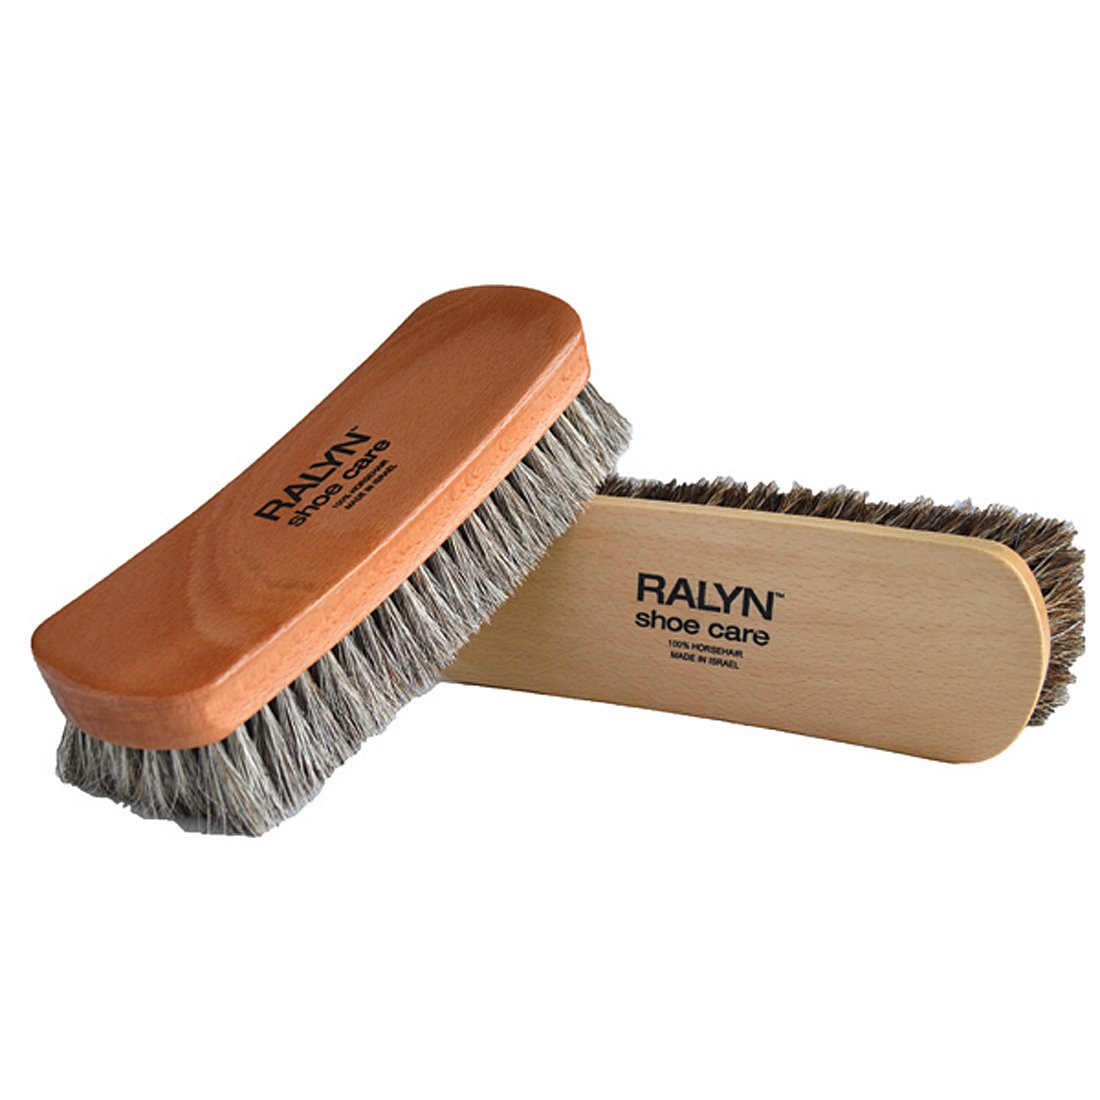 8'' Large Professional Shoe Shine, Buff Brushes. For Boots, Shoes & Other Leather Care. 100% Horsehair Bristles (Horsehair Color May Vary), 2-pack